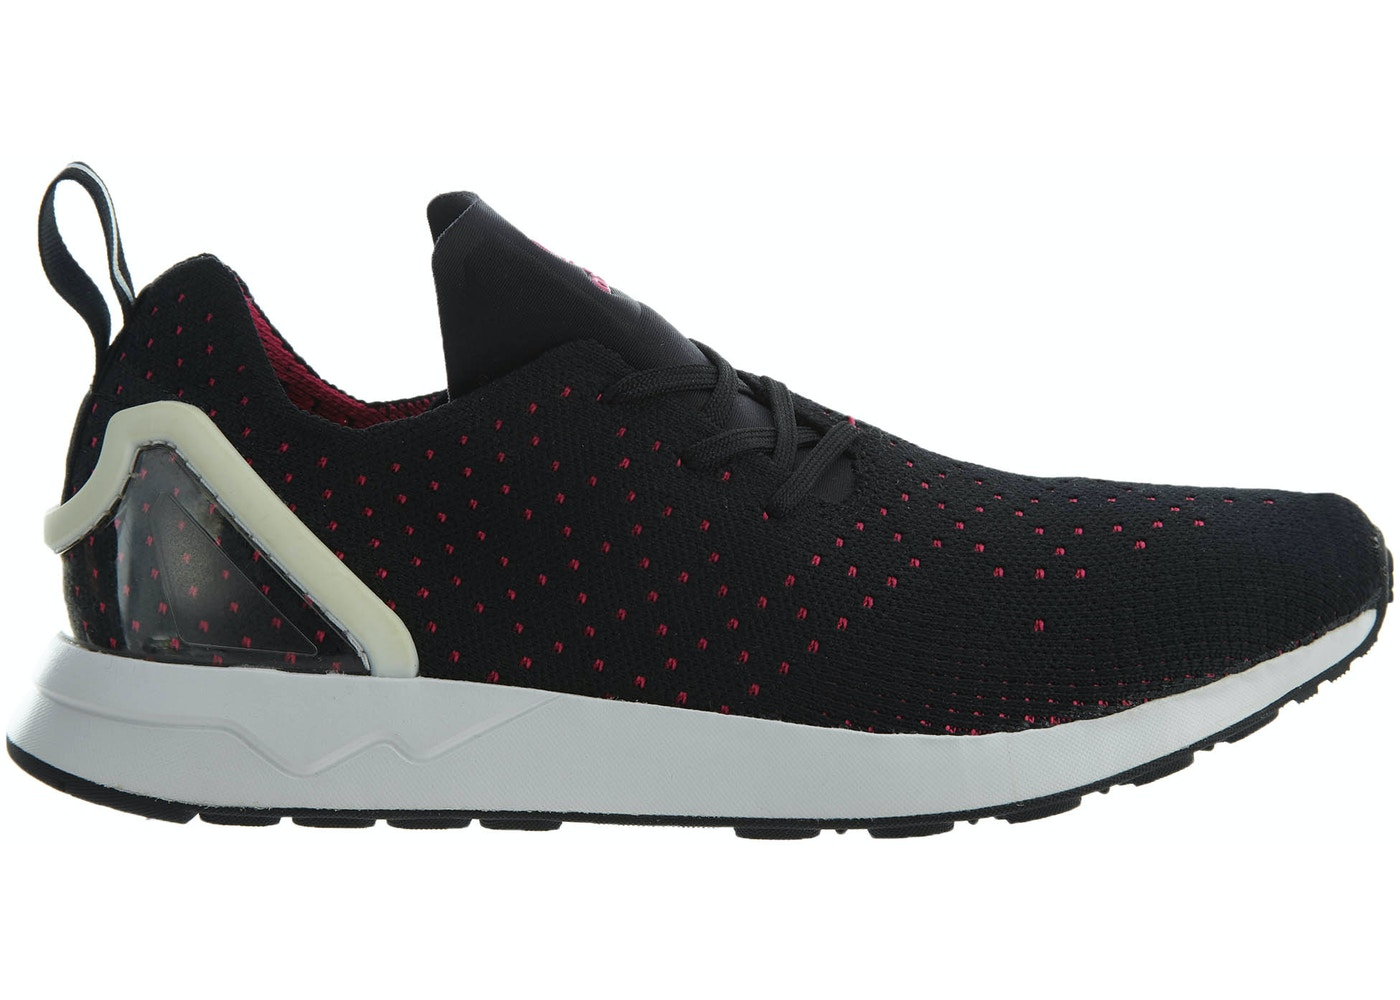 check out 4655e 6e657 adidas Zx Flux Adv Asym Pk Black Shock Pink-White